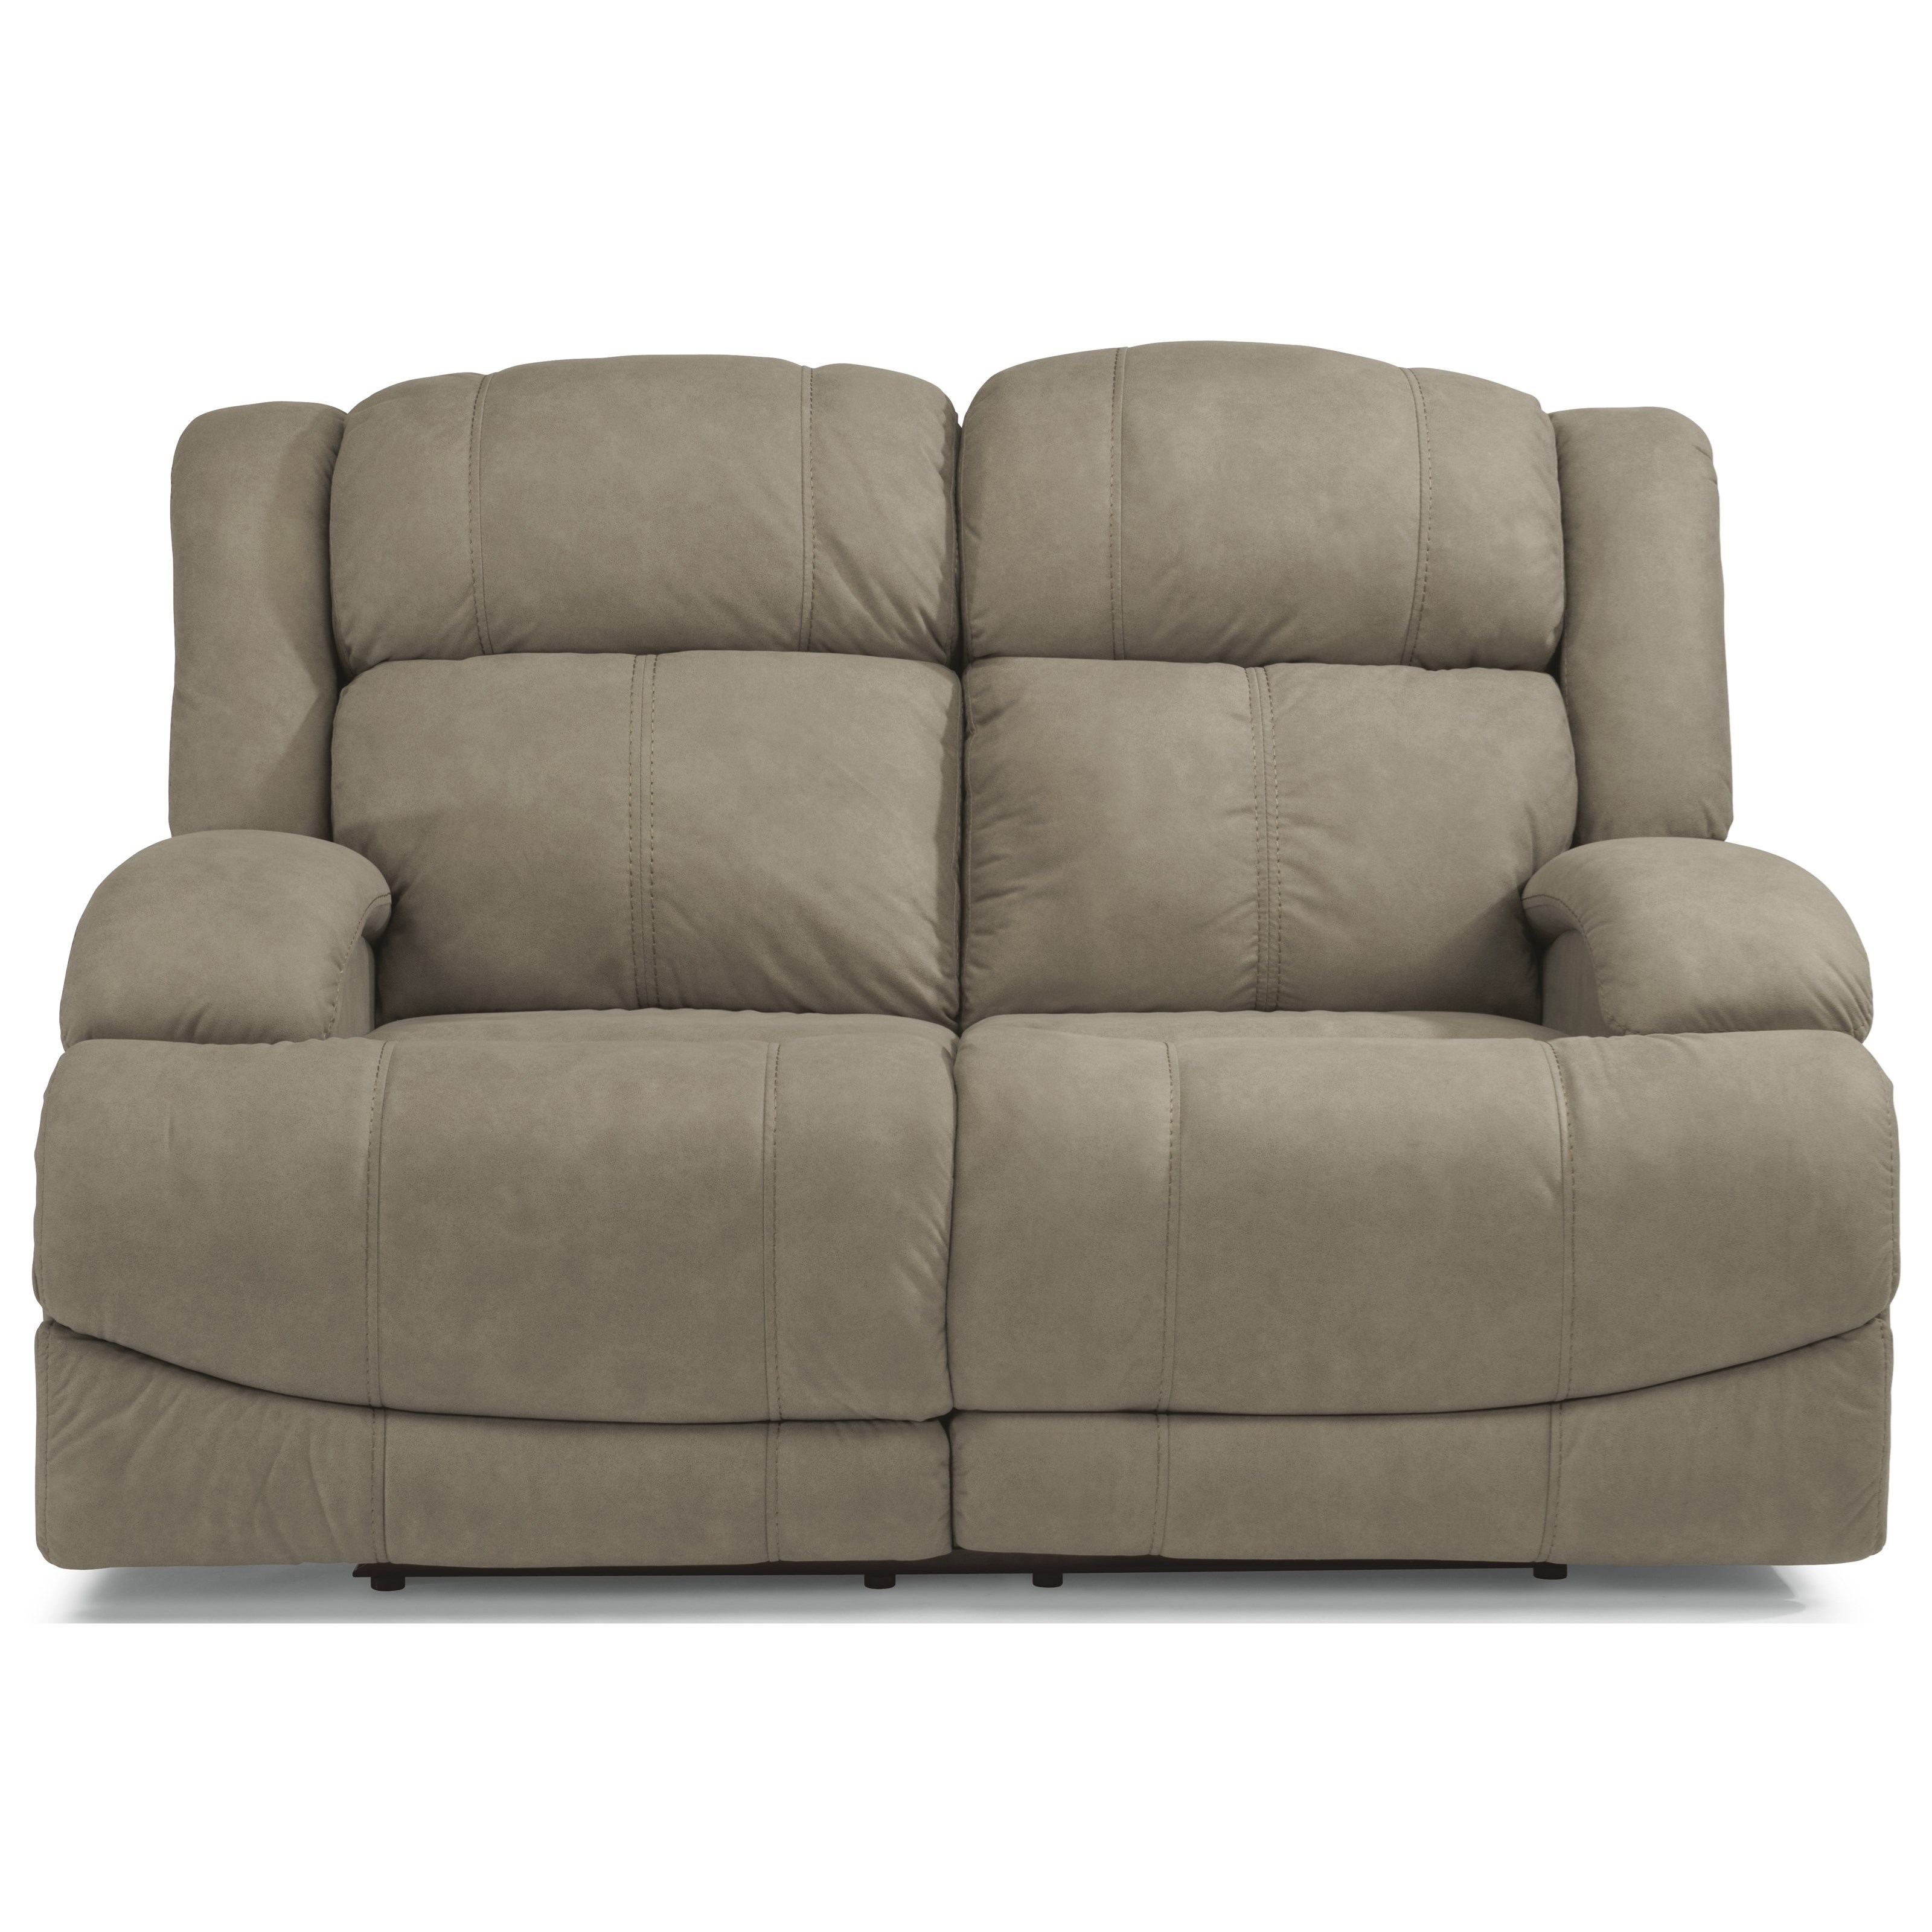 Flexsteel Sofa Locations: Flexsteel Latitudes-Declan Casual Power Reclining Loveseat